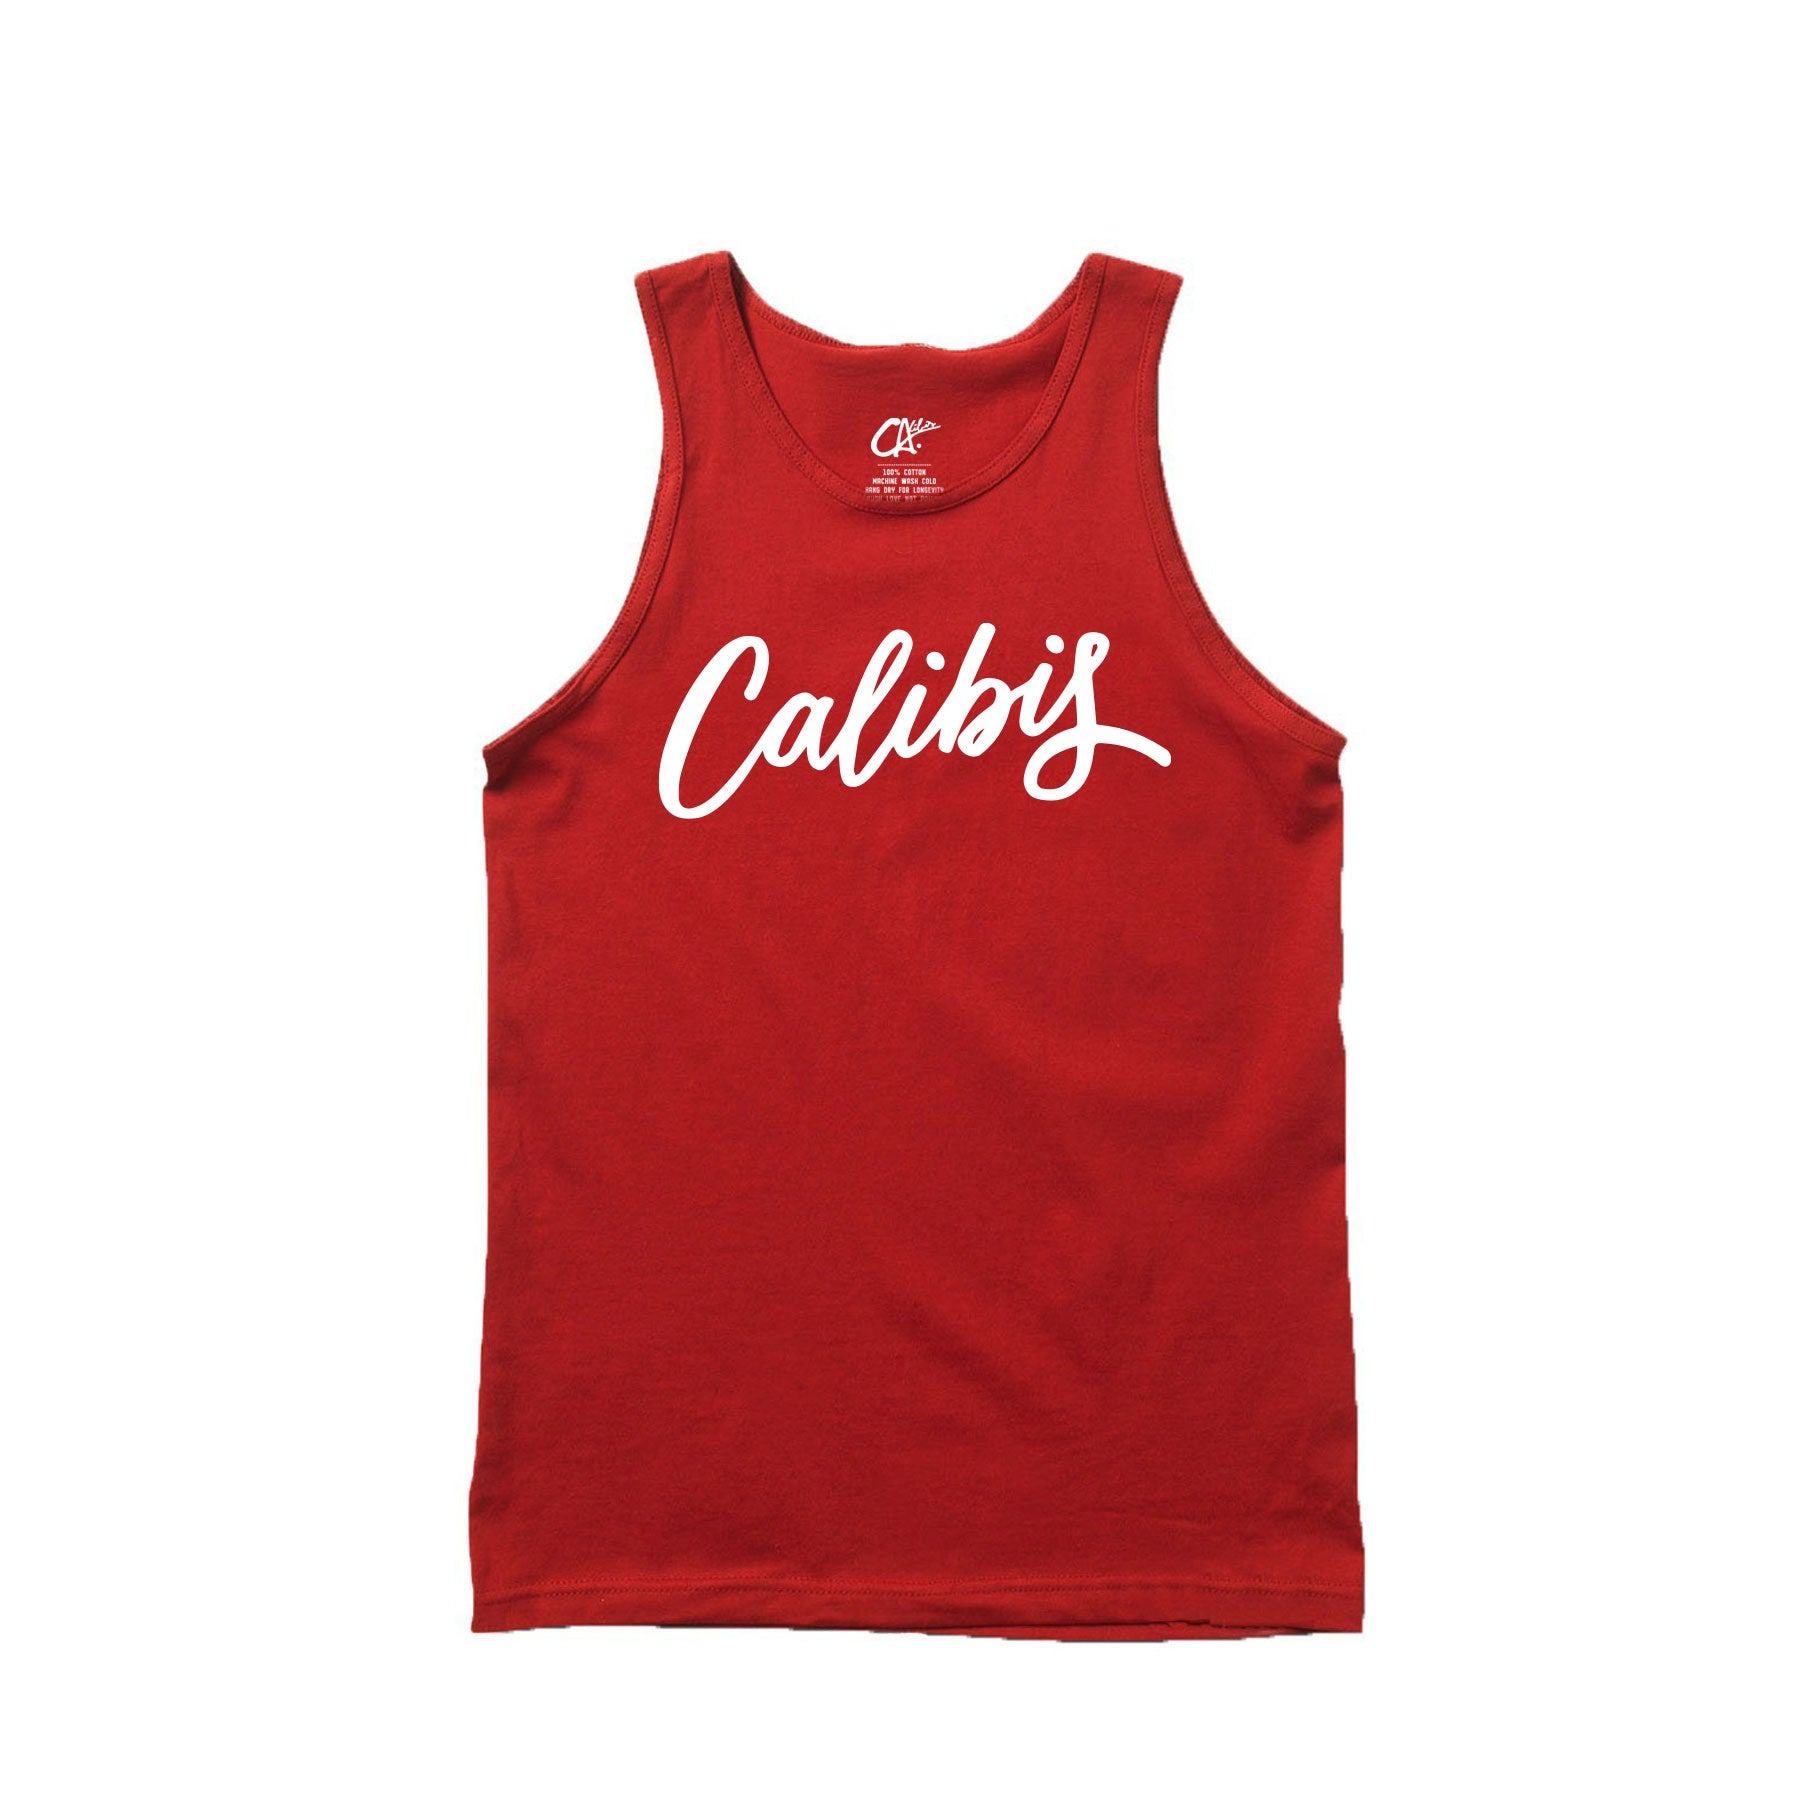 Scribble Tank Top by Calibis Clothing